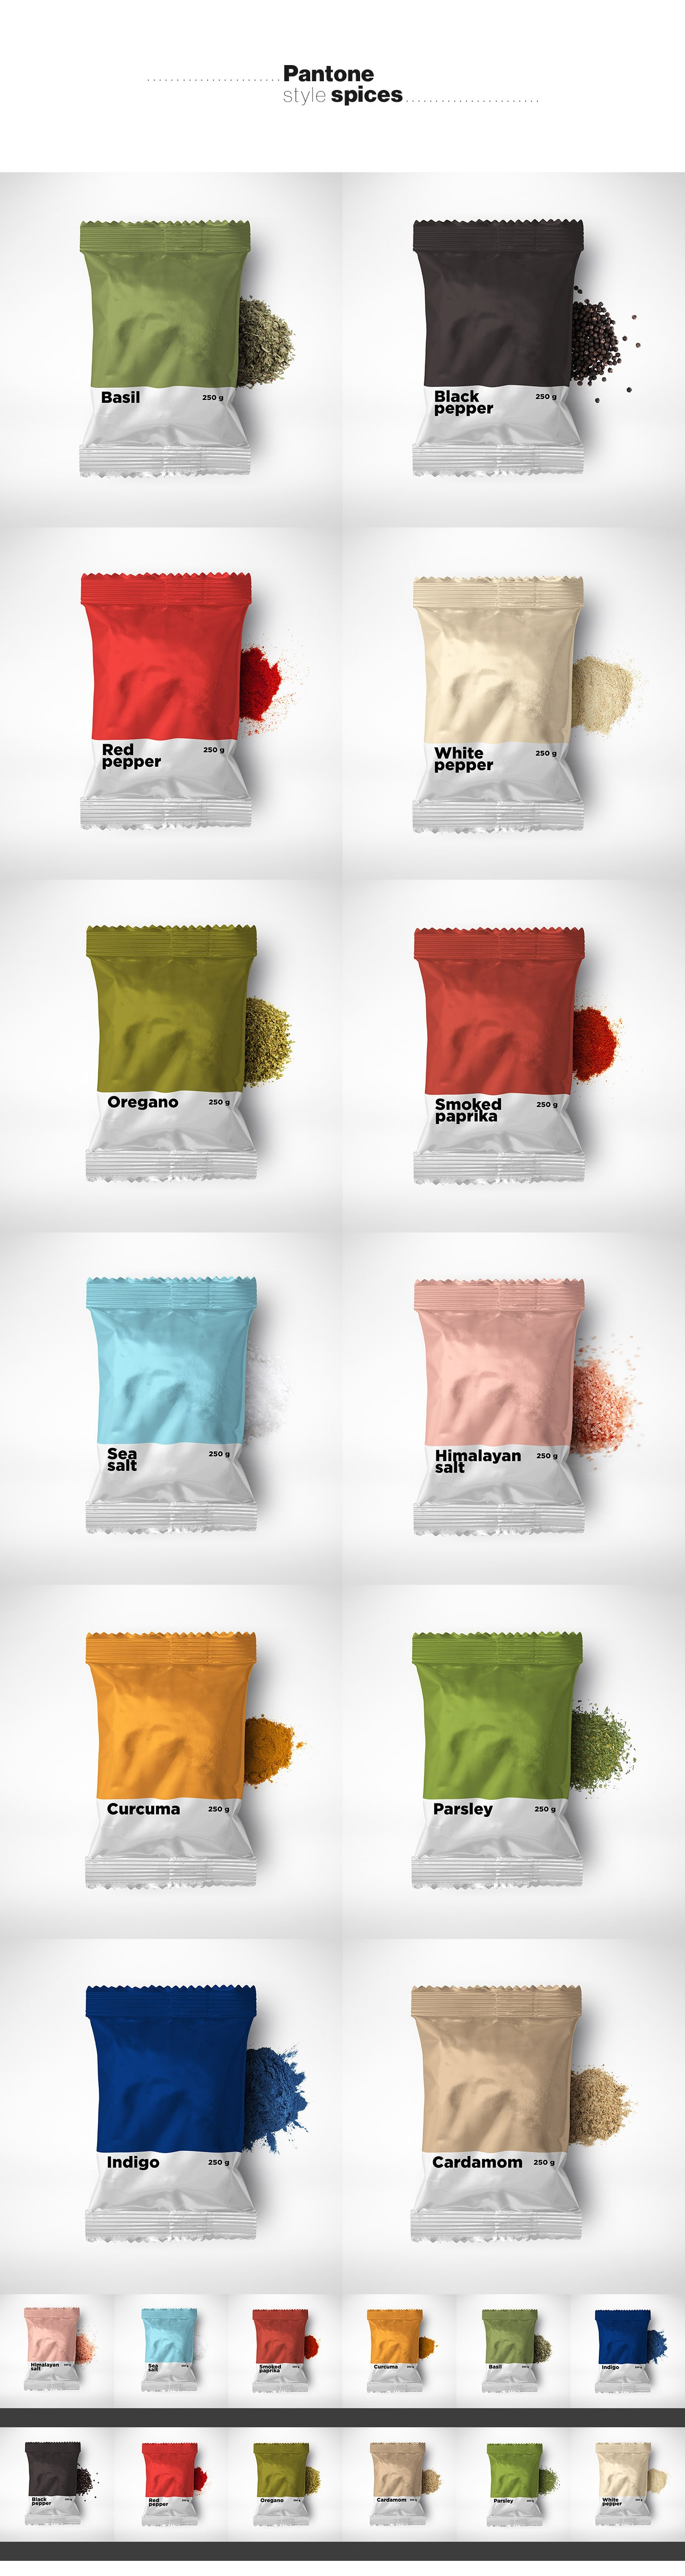 Pantone Style Spices Project